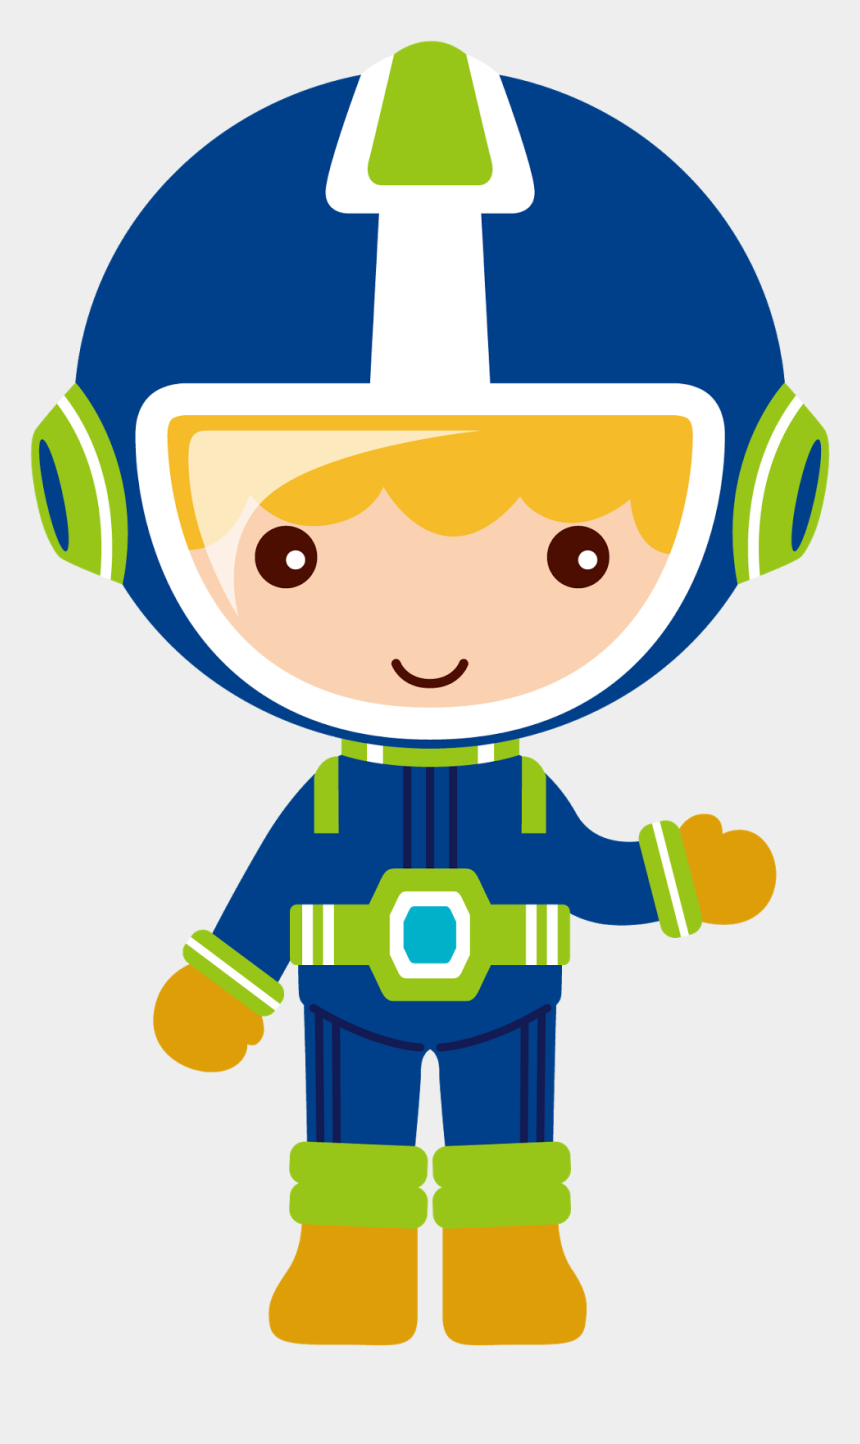 astronaut clip art, Cartoons - Aliens, Astronauts, And Spaceships - Space Theme Clipart